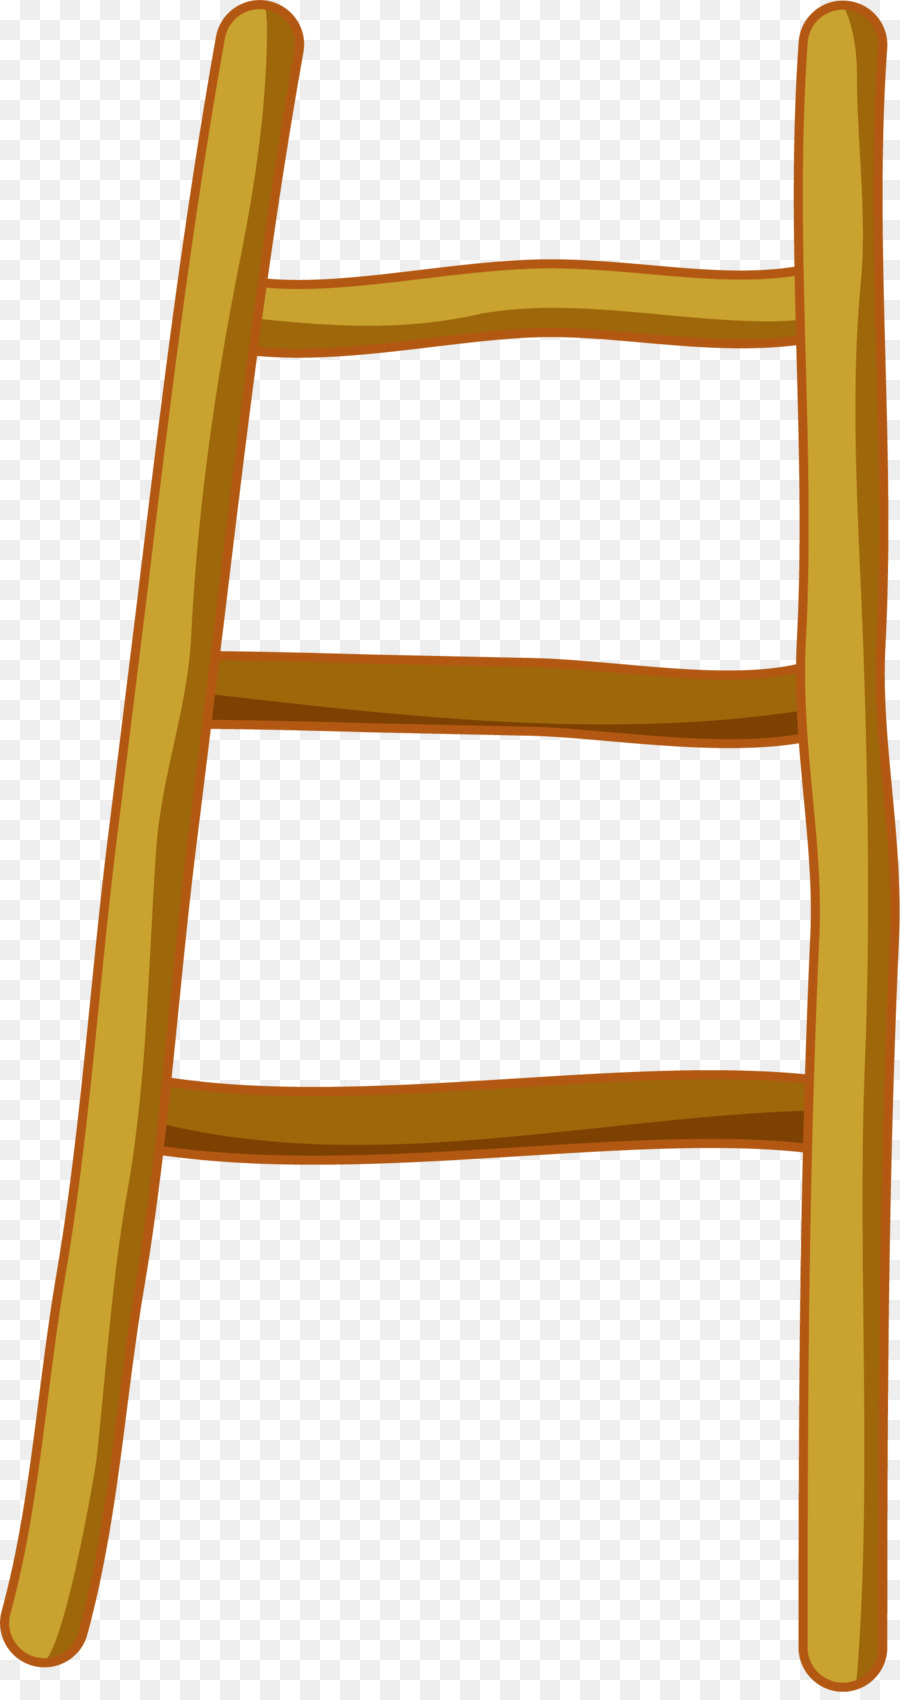 Ladder clipart yellow ladder, Ladder yellow ladder.